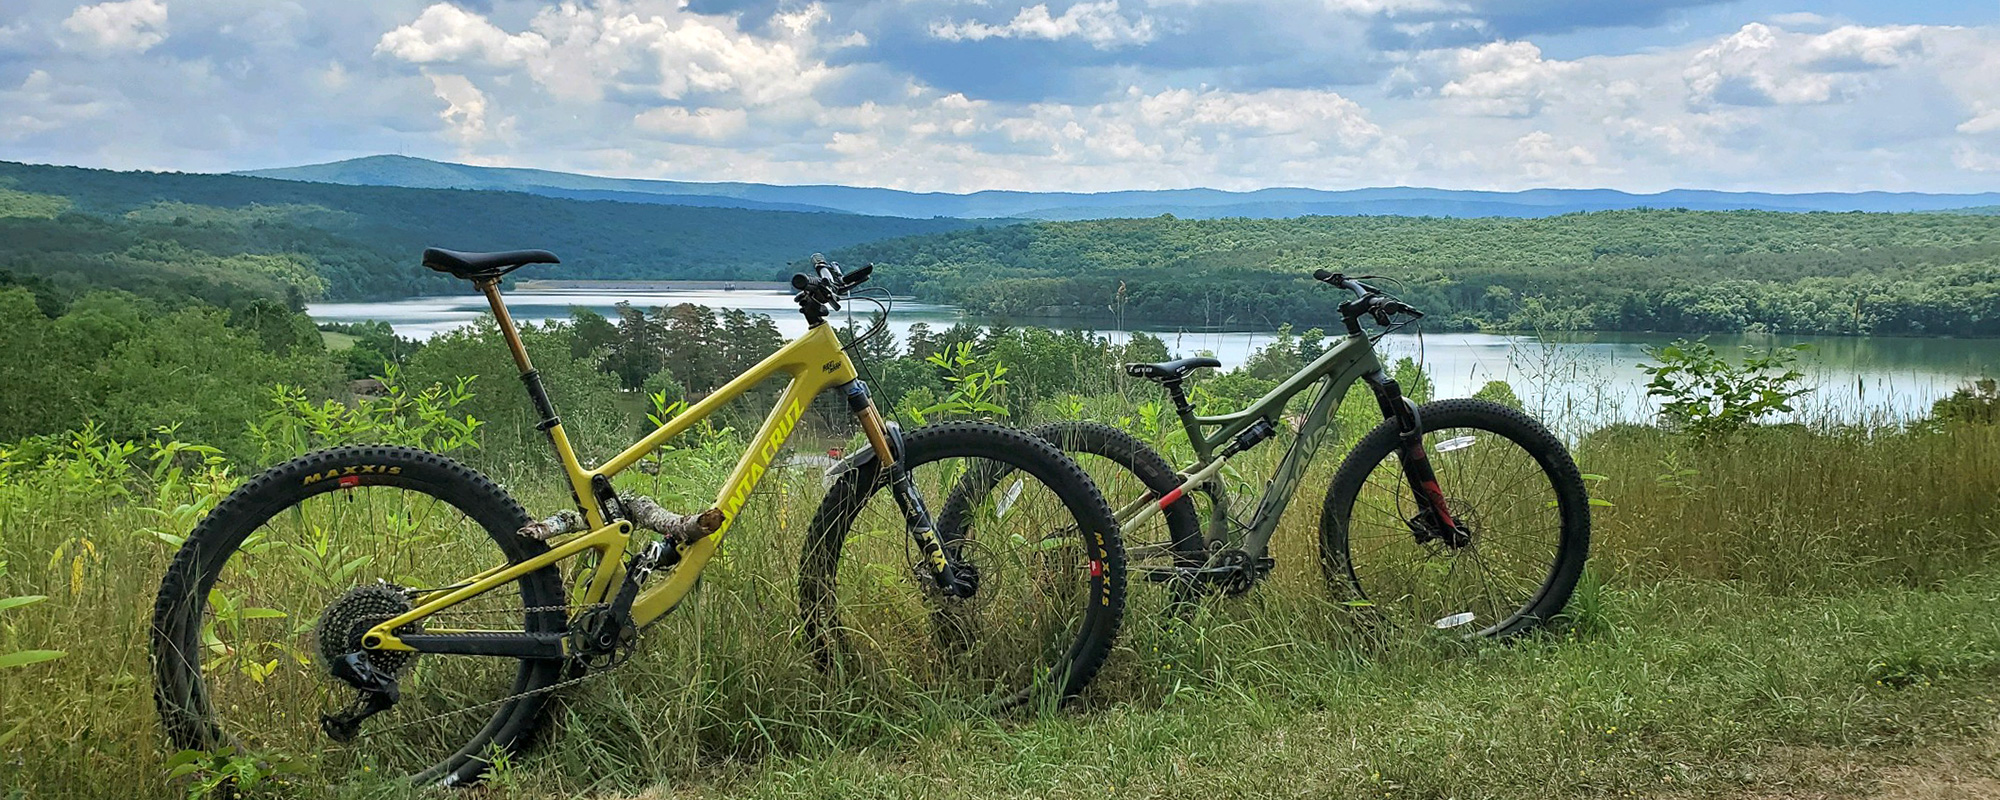 bicycle on a trail overlooking a lake